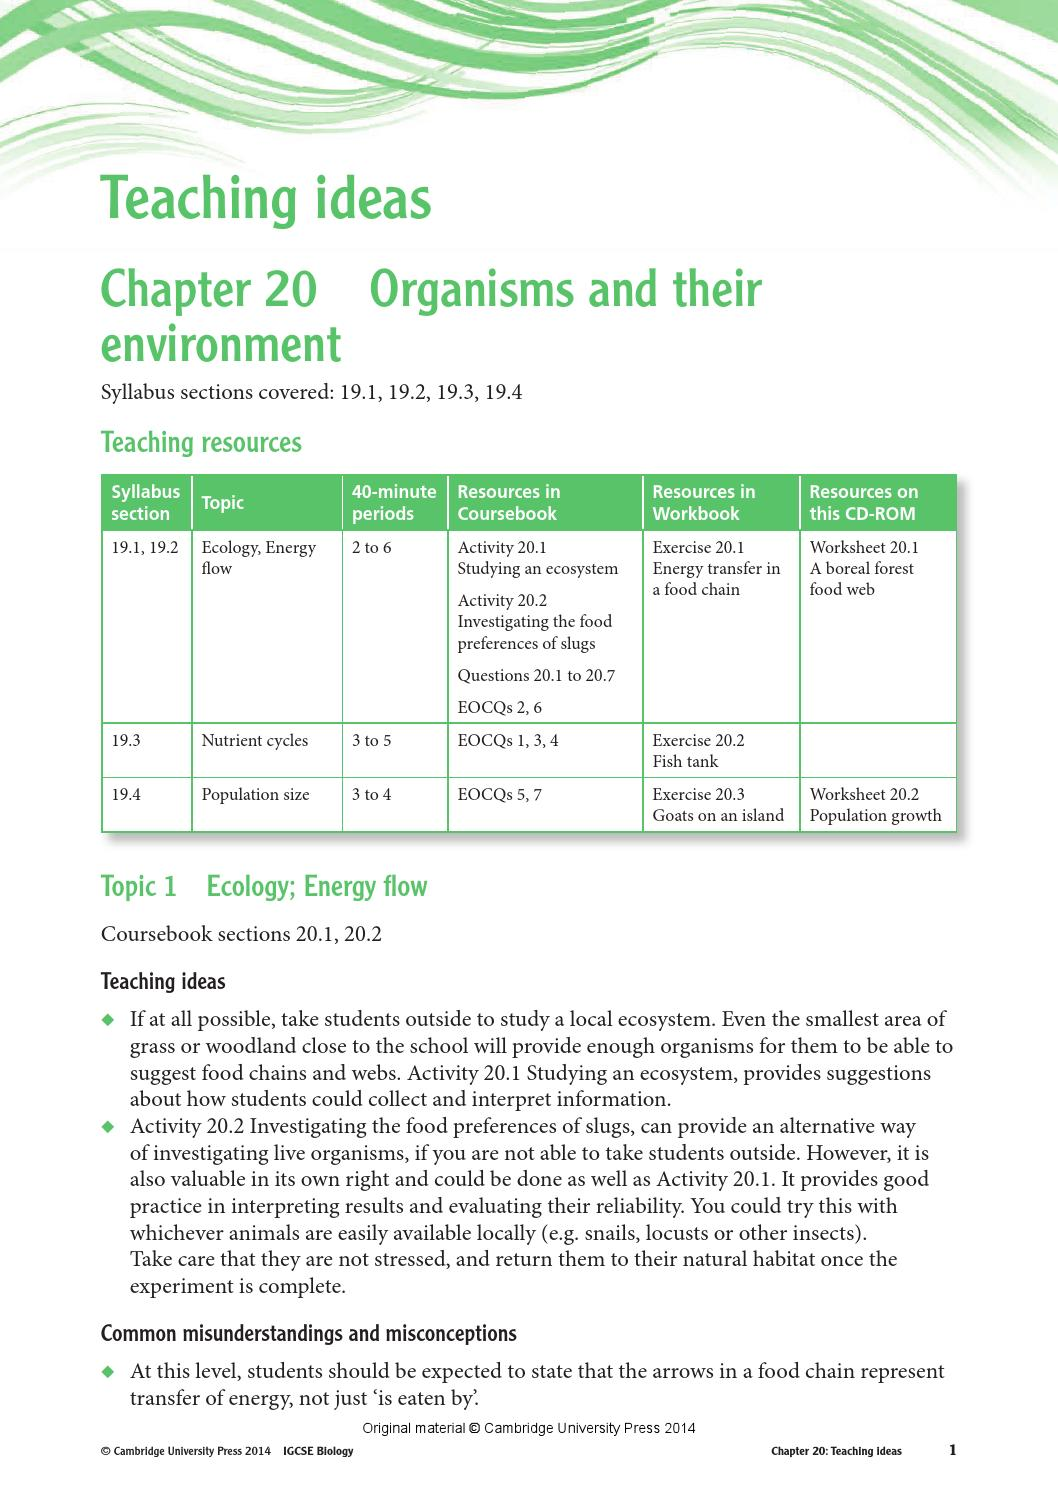 Worksheet Food Chain Trophic Levels Worksheet Answers Thedanks